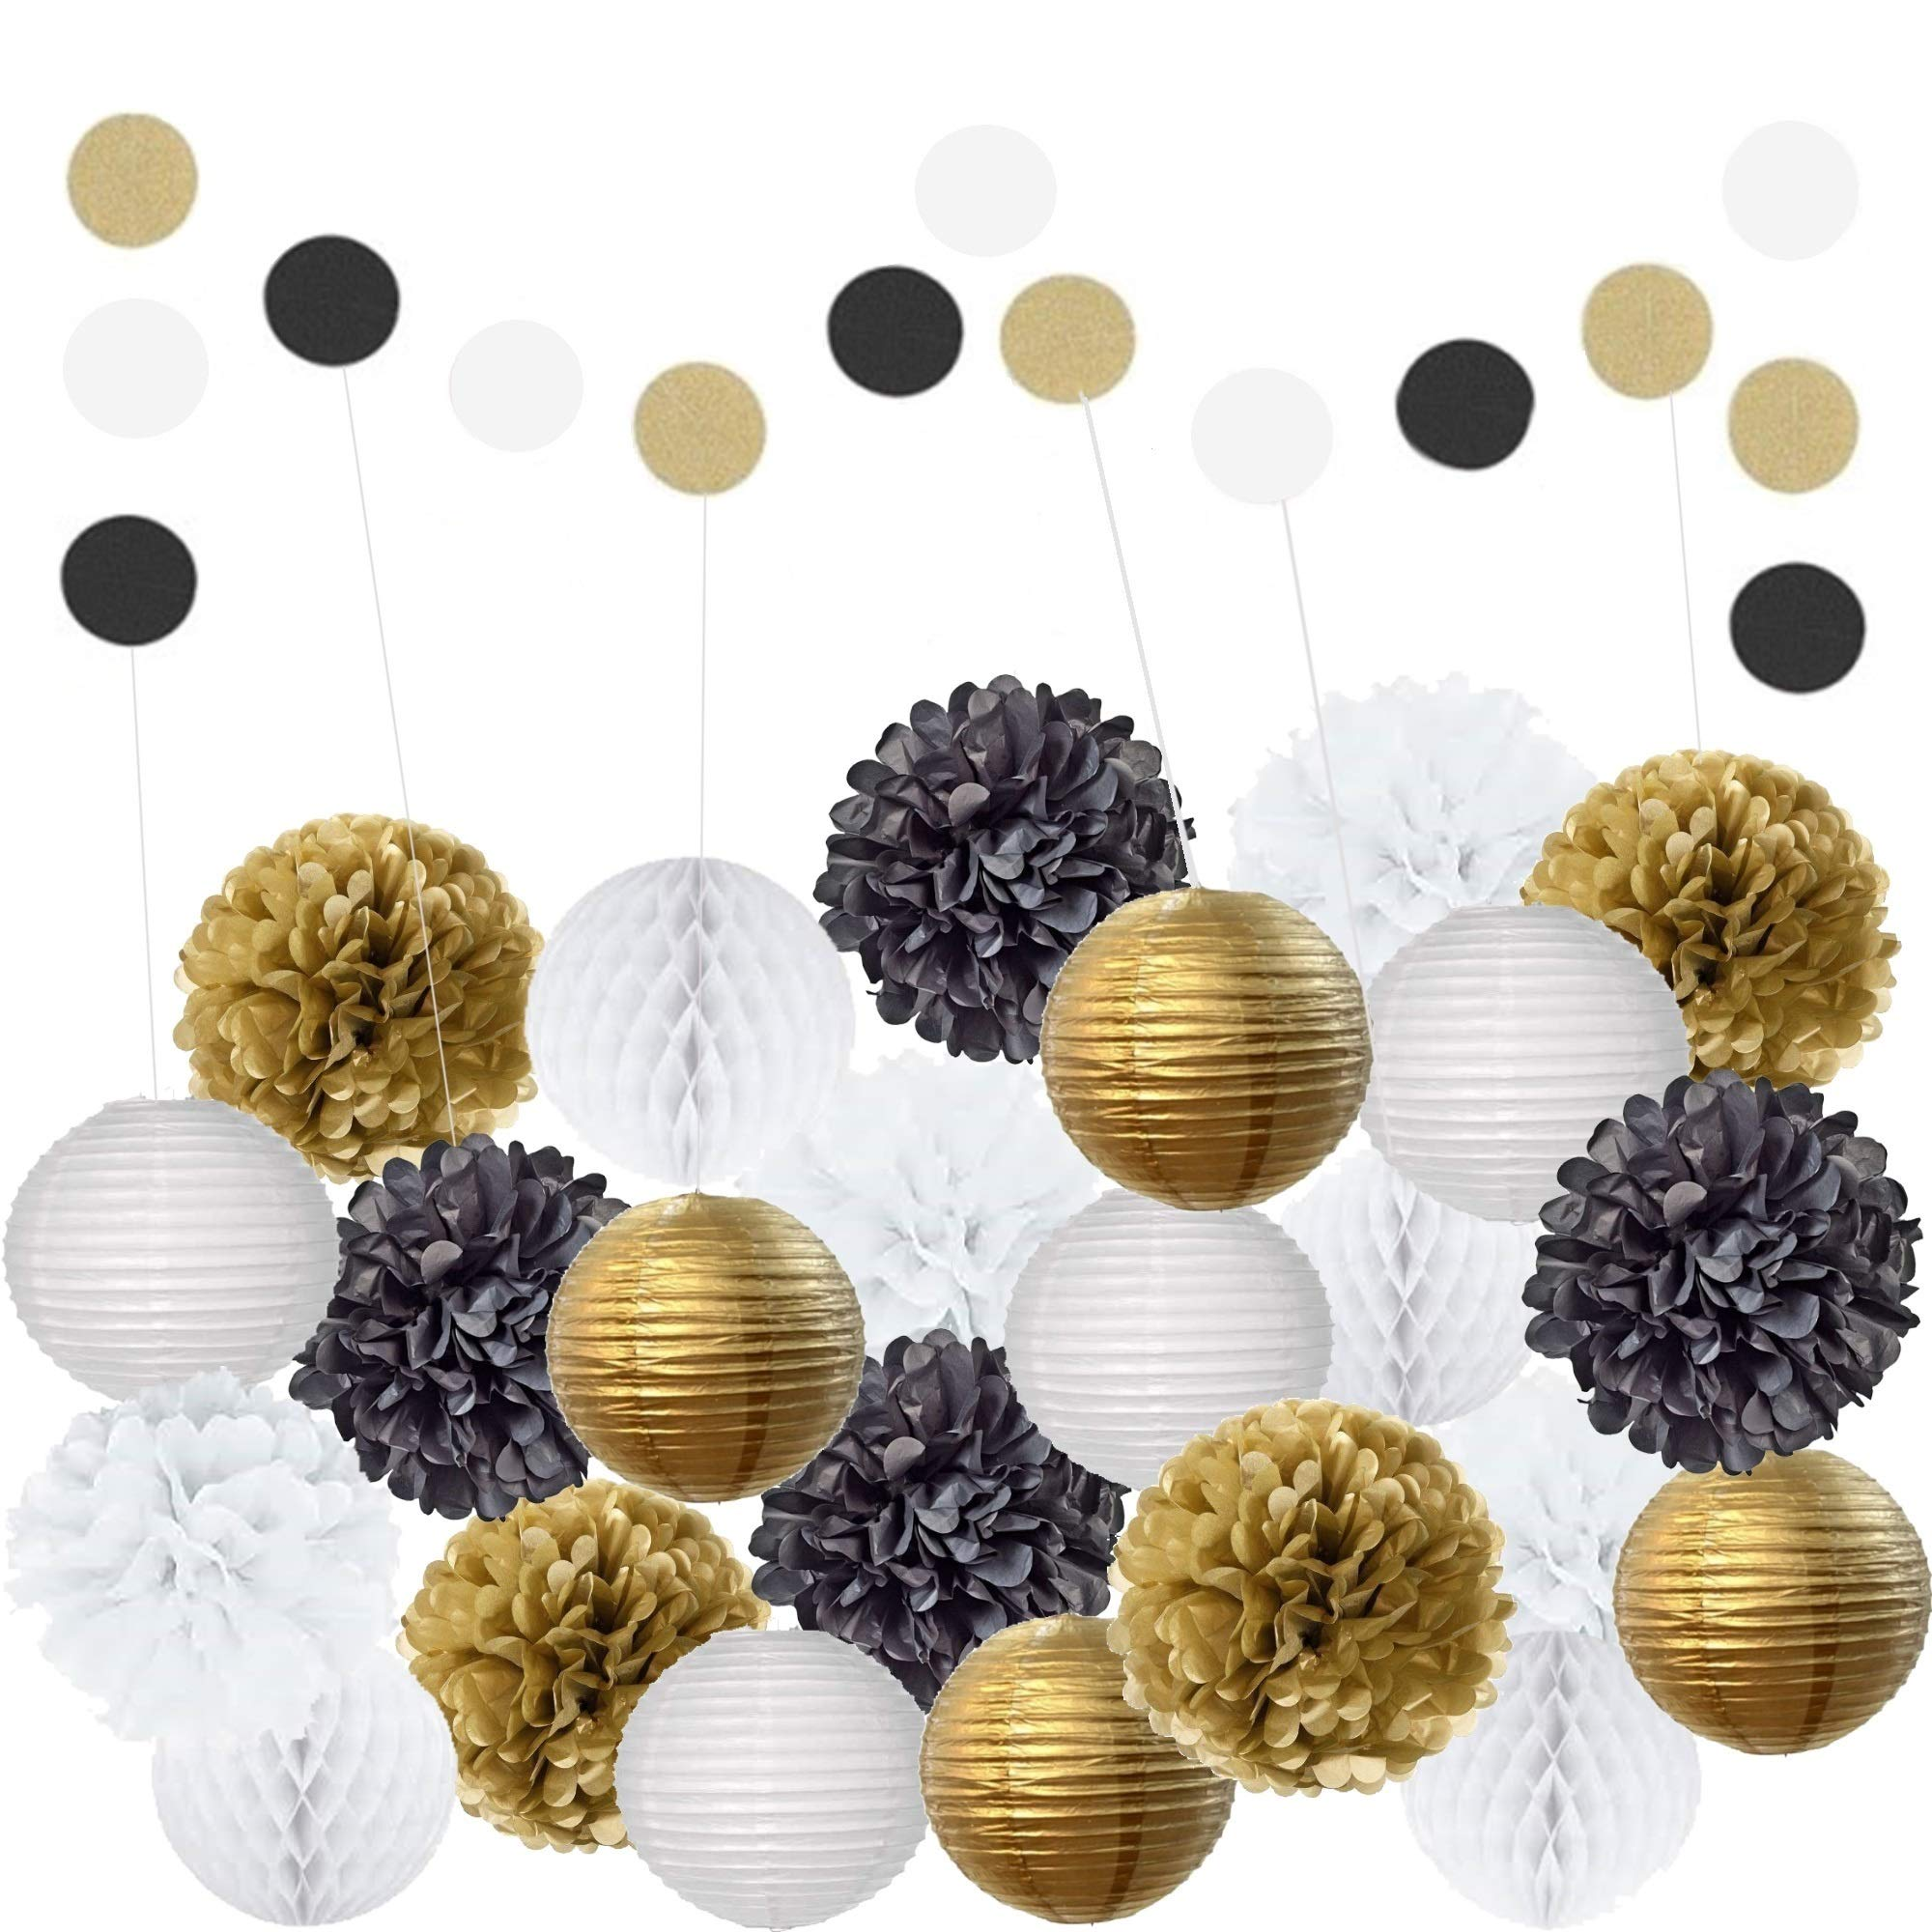 EpiqueOne 22 Piece Black Gold White Table & Wall Party Decorations Kit | Hanging Tissue Paper Pom Poms, Lanterns, Balls | Birthday Celebrations, Wedding, Graduation Decor by EPIQUEONE